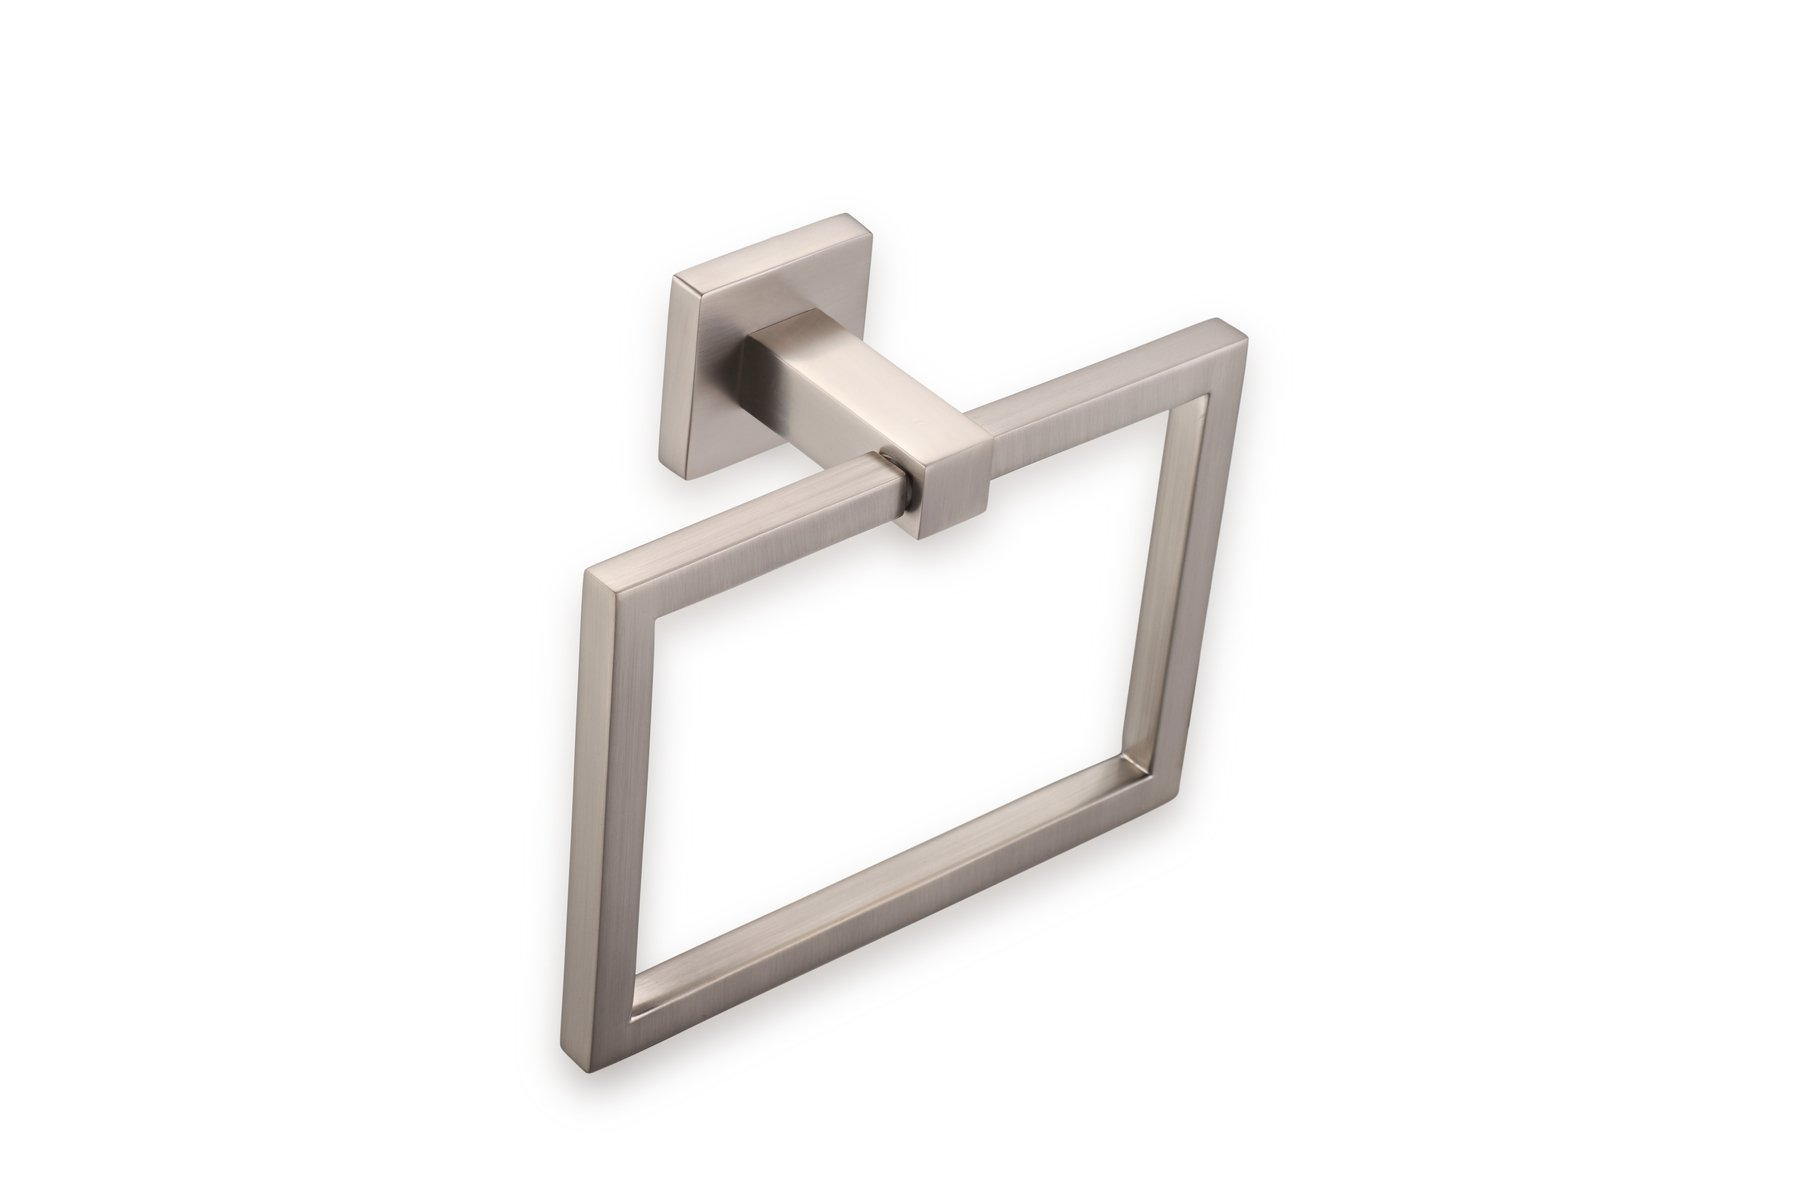 MAKYYE Mitte Towel Ring | Modern Rectangular Wall Mount Towel Holder for Bathroom Lavatory, Shower, Kitchen Brushed Nickel, OYA1041302 by Maykke